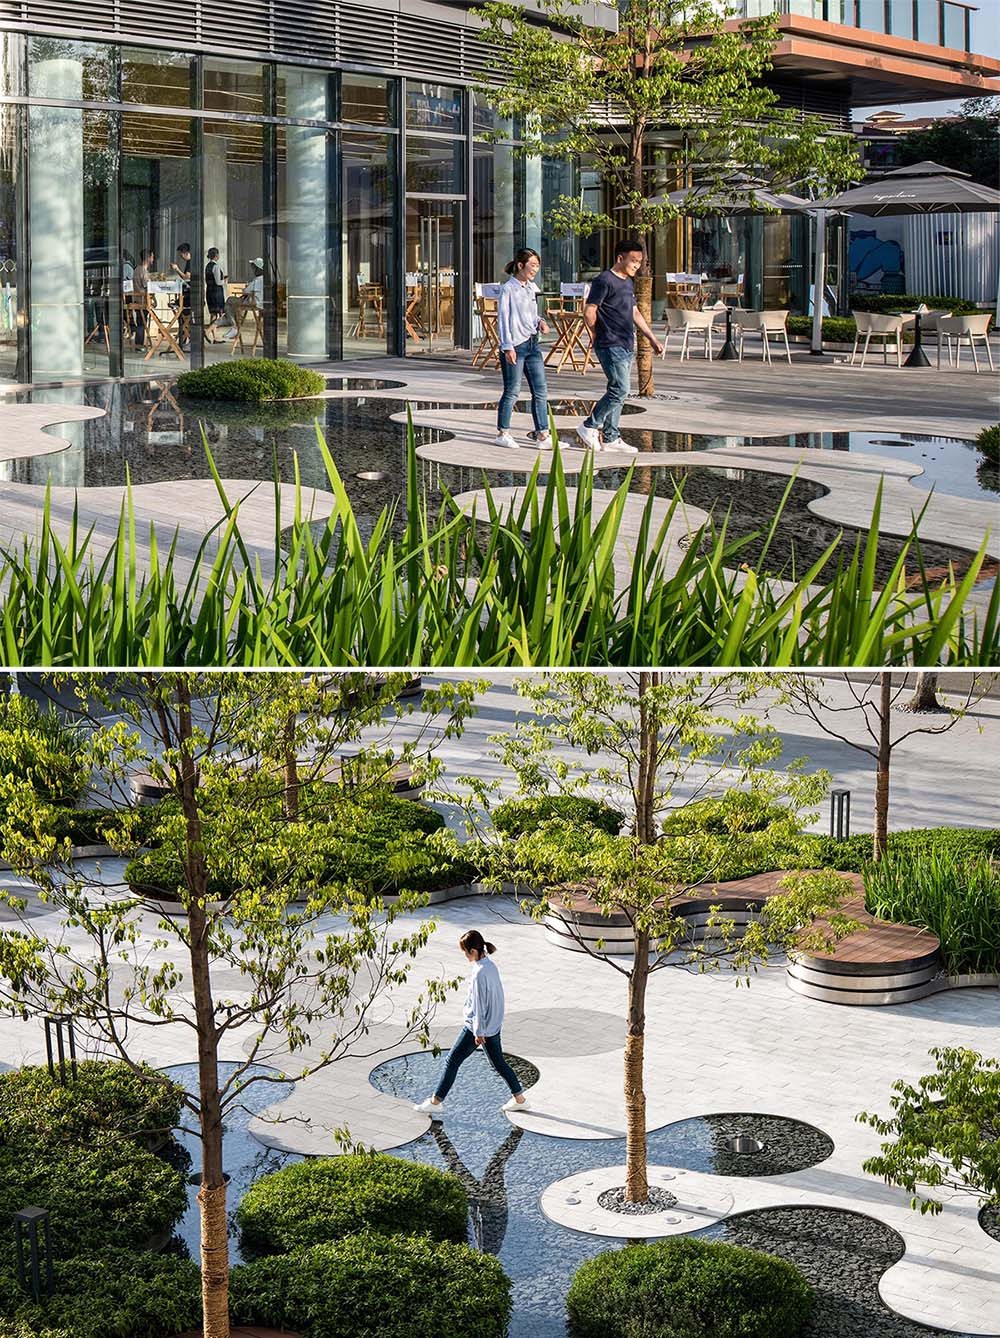 A landscaped park that includes curving water features that surround pathways.